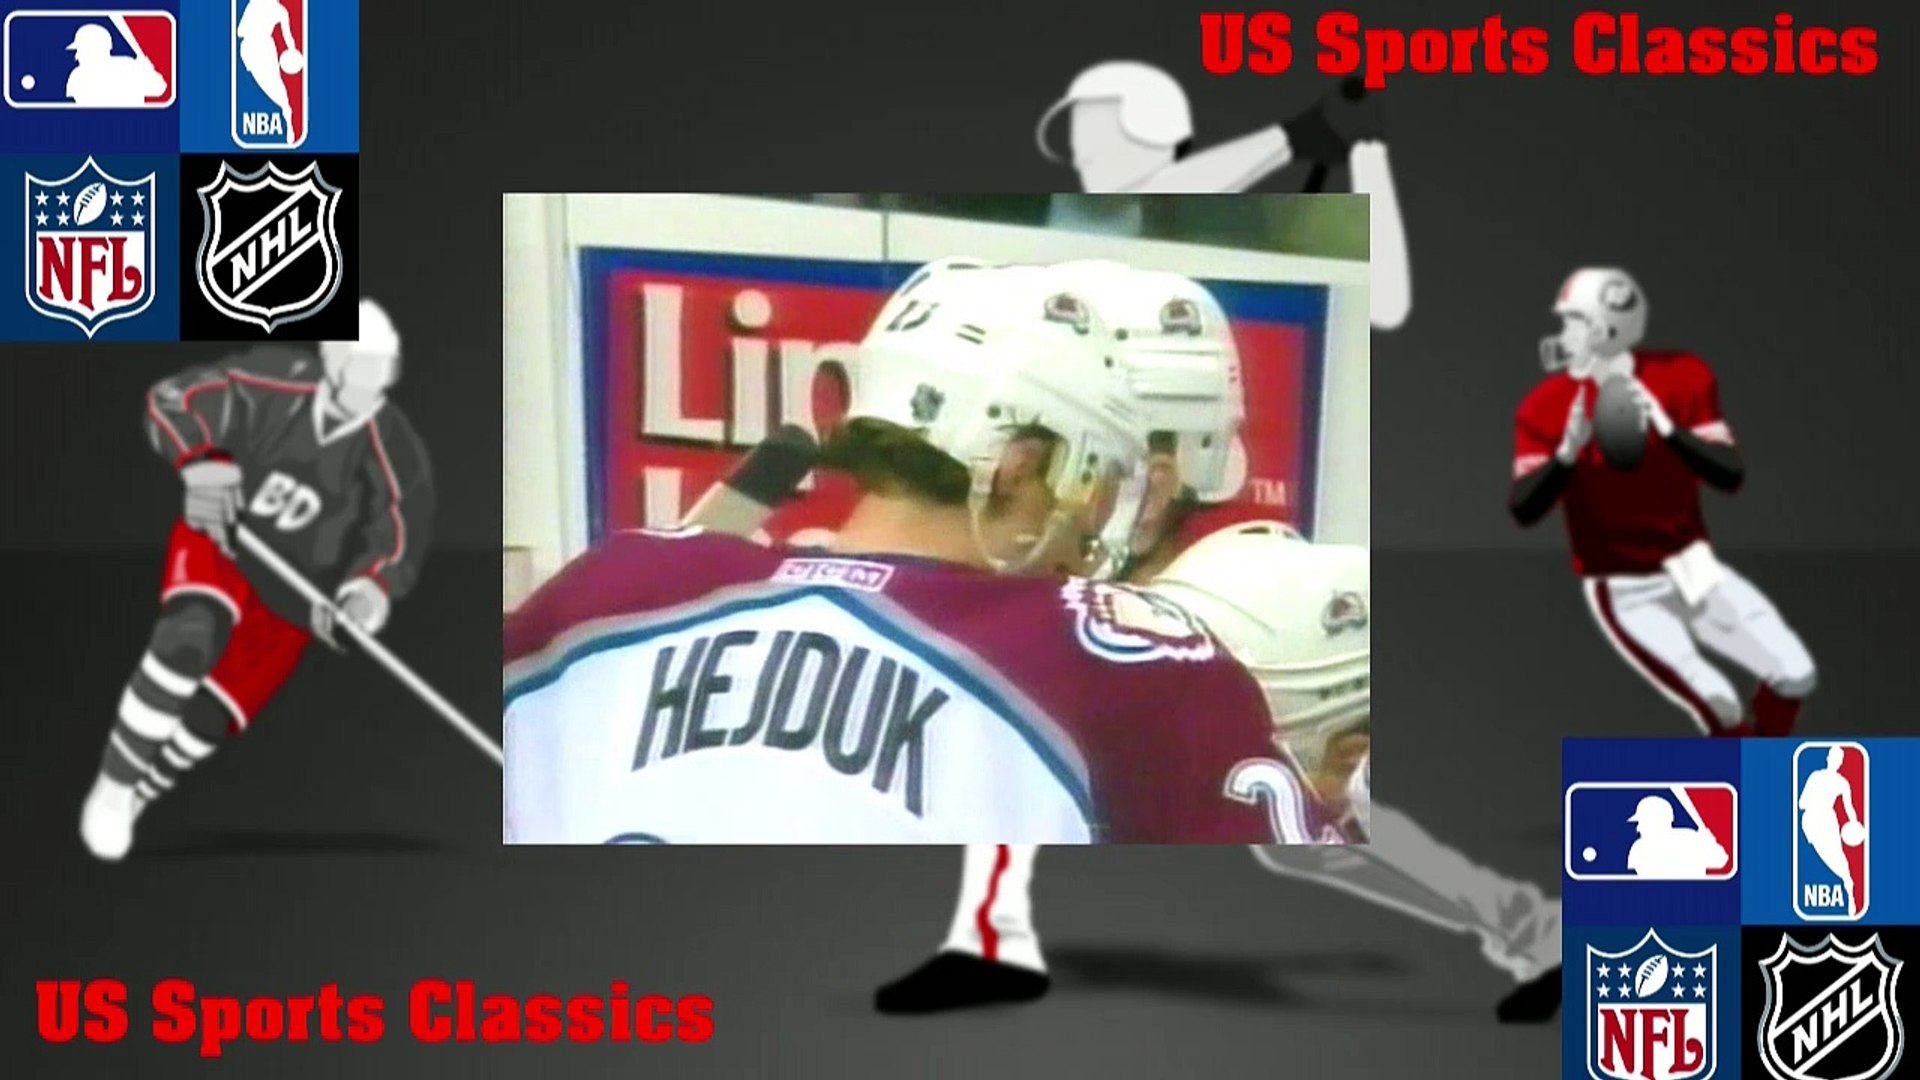 NHL 2001 Stanley Cup Final G1 - New Jersey Devils vs Colorado Avalanche  2001-05-26